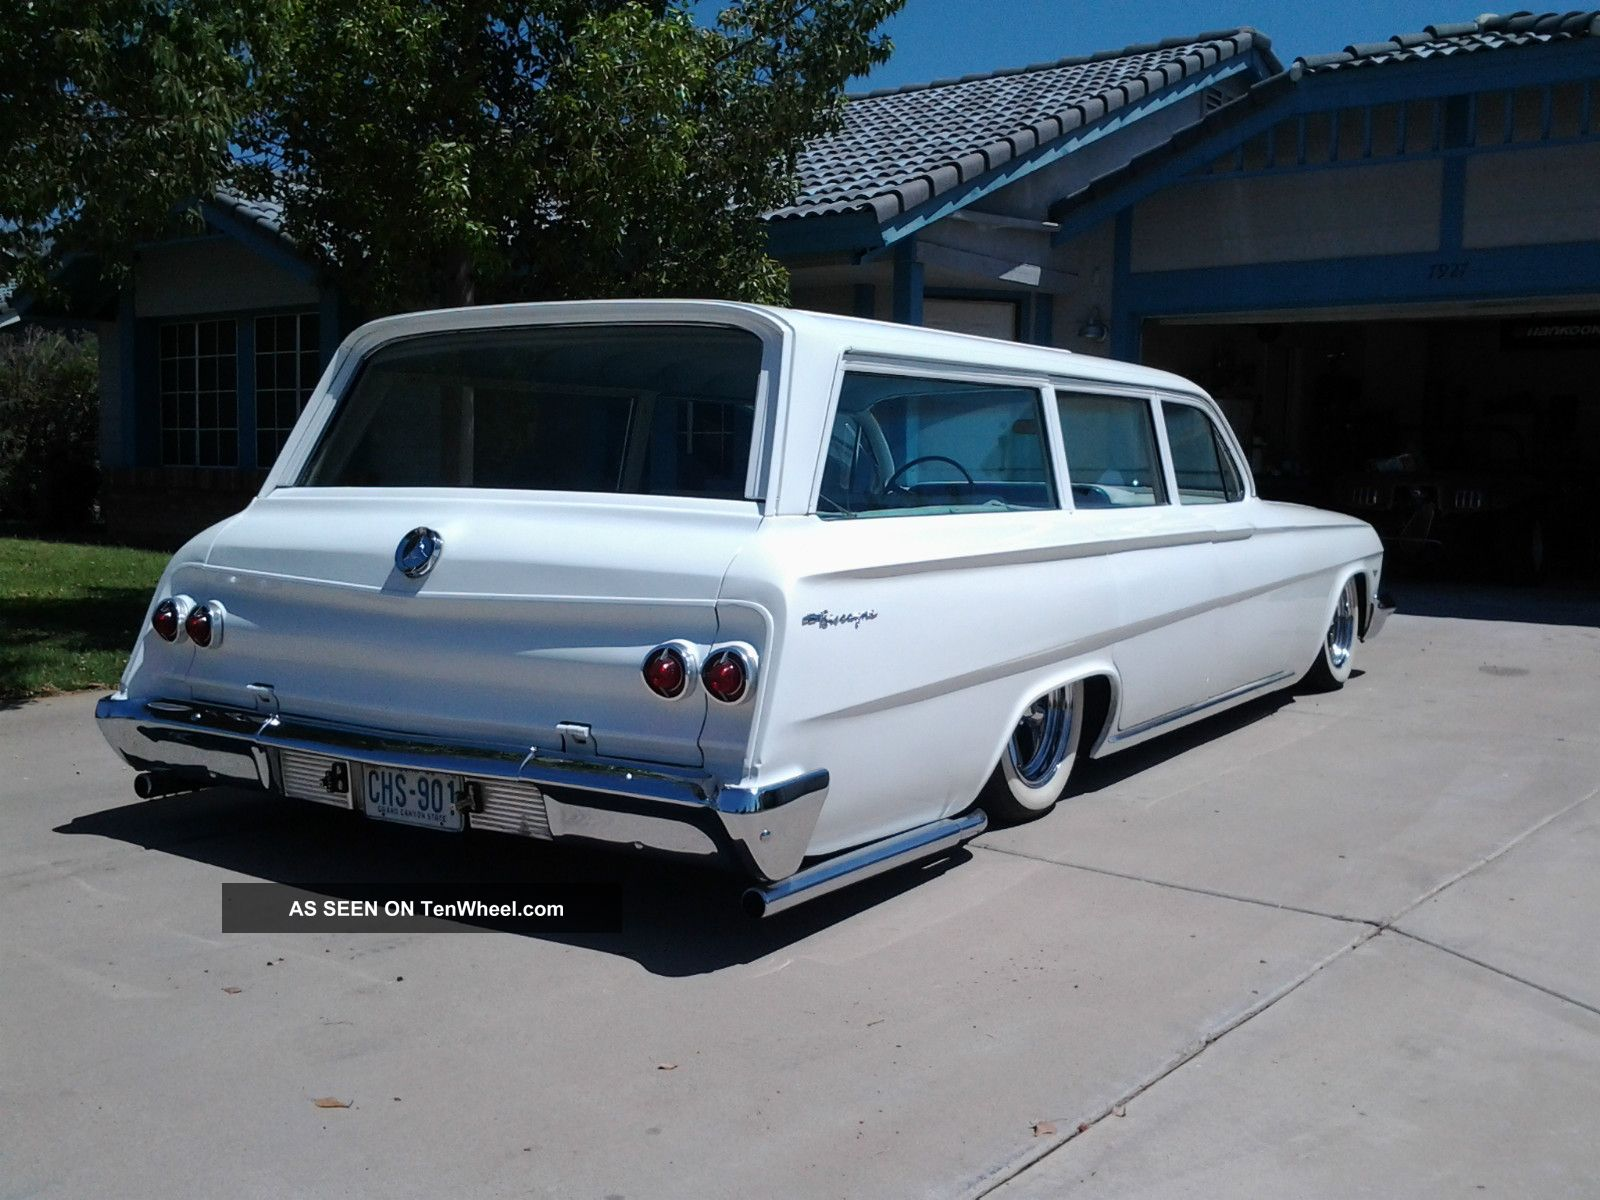 1962 Chevrolet Four-door Wagon Backgrounds, Compatible - PC, Mobile, Gadgets| 1600x1200 px